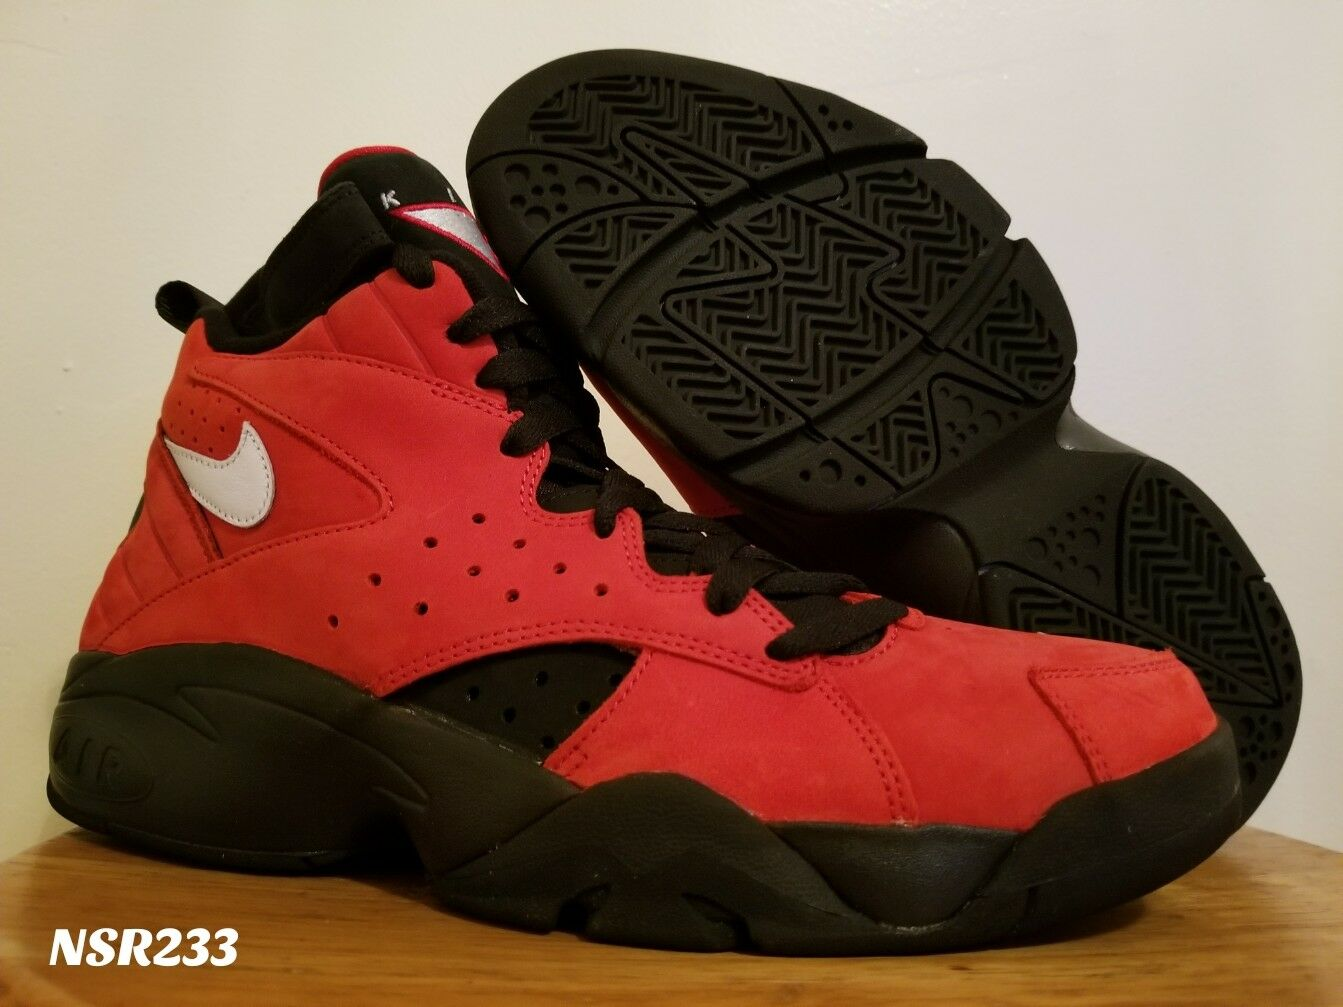 KITH X X X NIKE AIR MAESTRO II HIGH rosso PIPPEN NKAH1069 600 SZ 9-9.5 READY TO SHIP e7d0d2